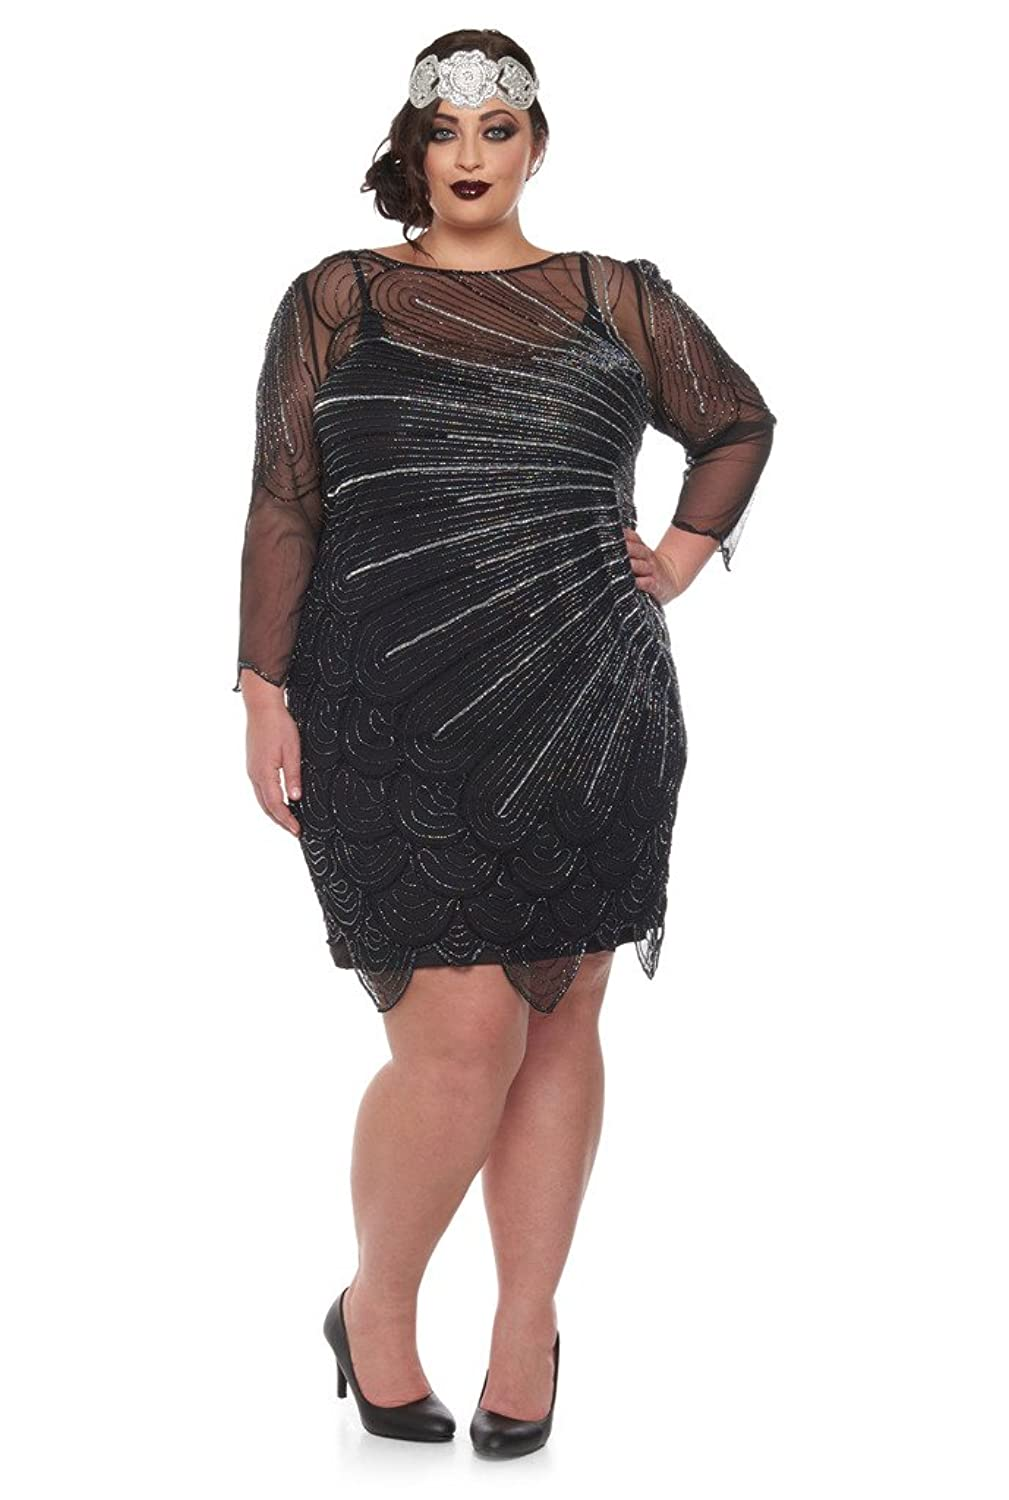 Best 1920s Prom Dresses – Great Gatsby Style Gowns Catherine Vintage Inspired Flapper Dress in Black Silver $105.22 AT vintagedancer.com